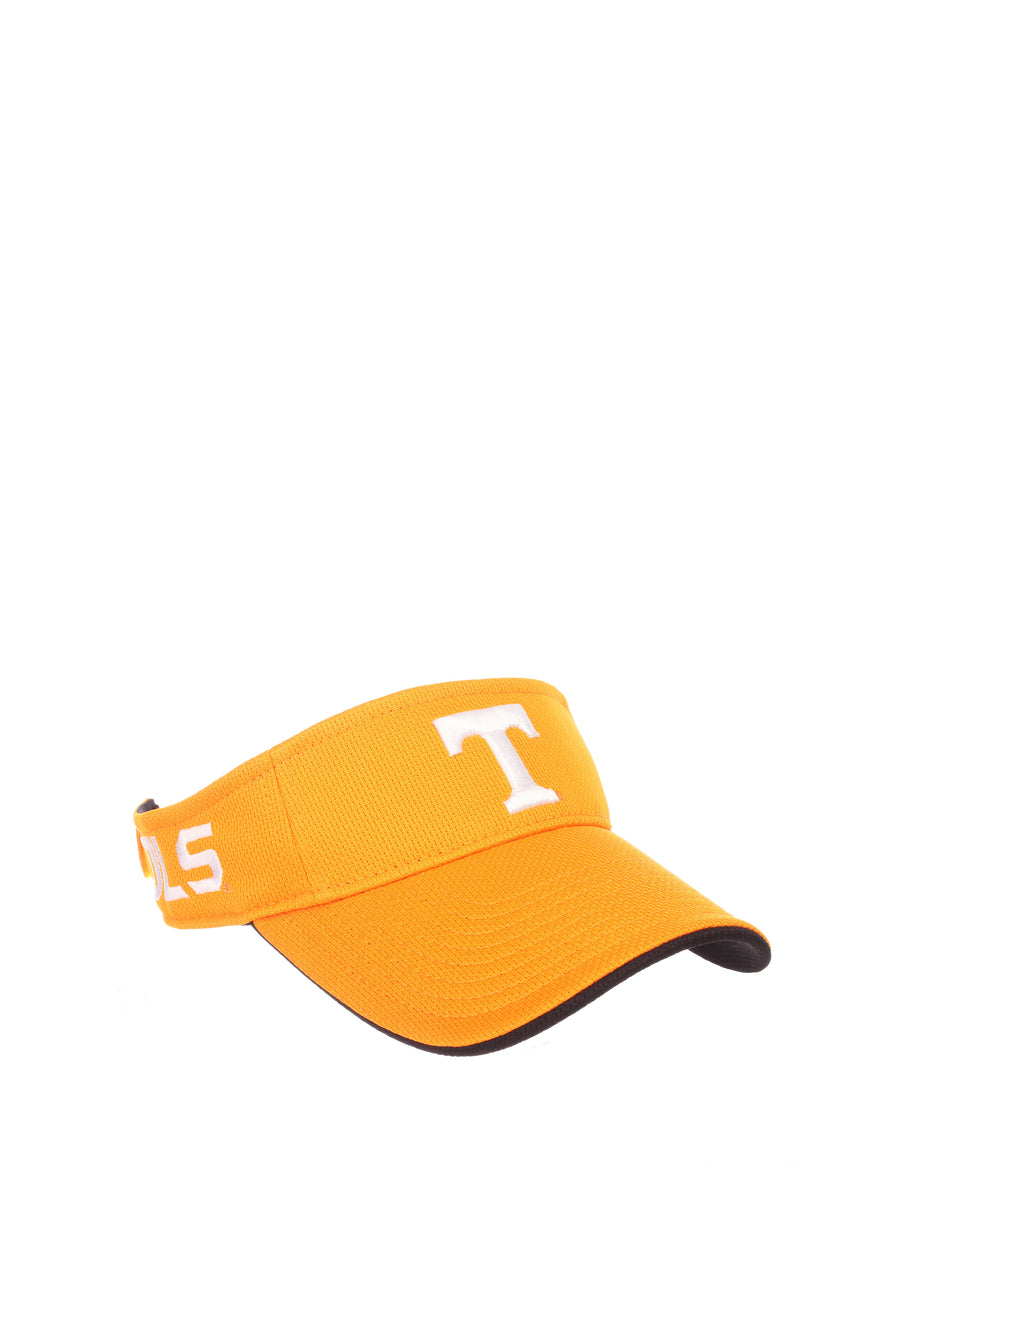 Tennessee (Knoxville) Volley Visor (T) Light Orange VaporTech Adjustable Hat by Zephyr